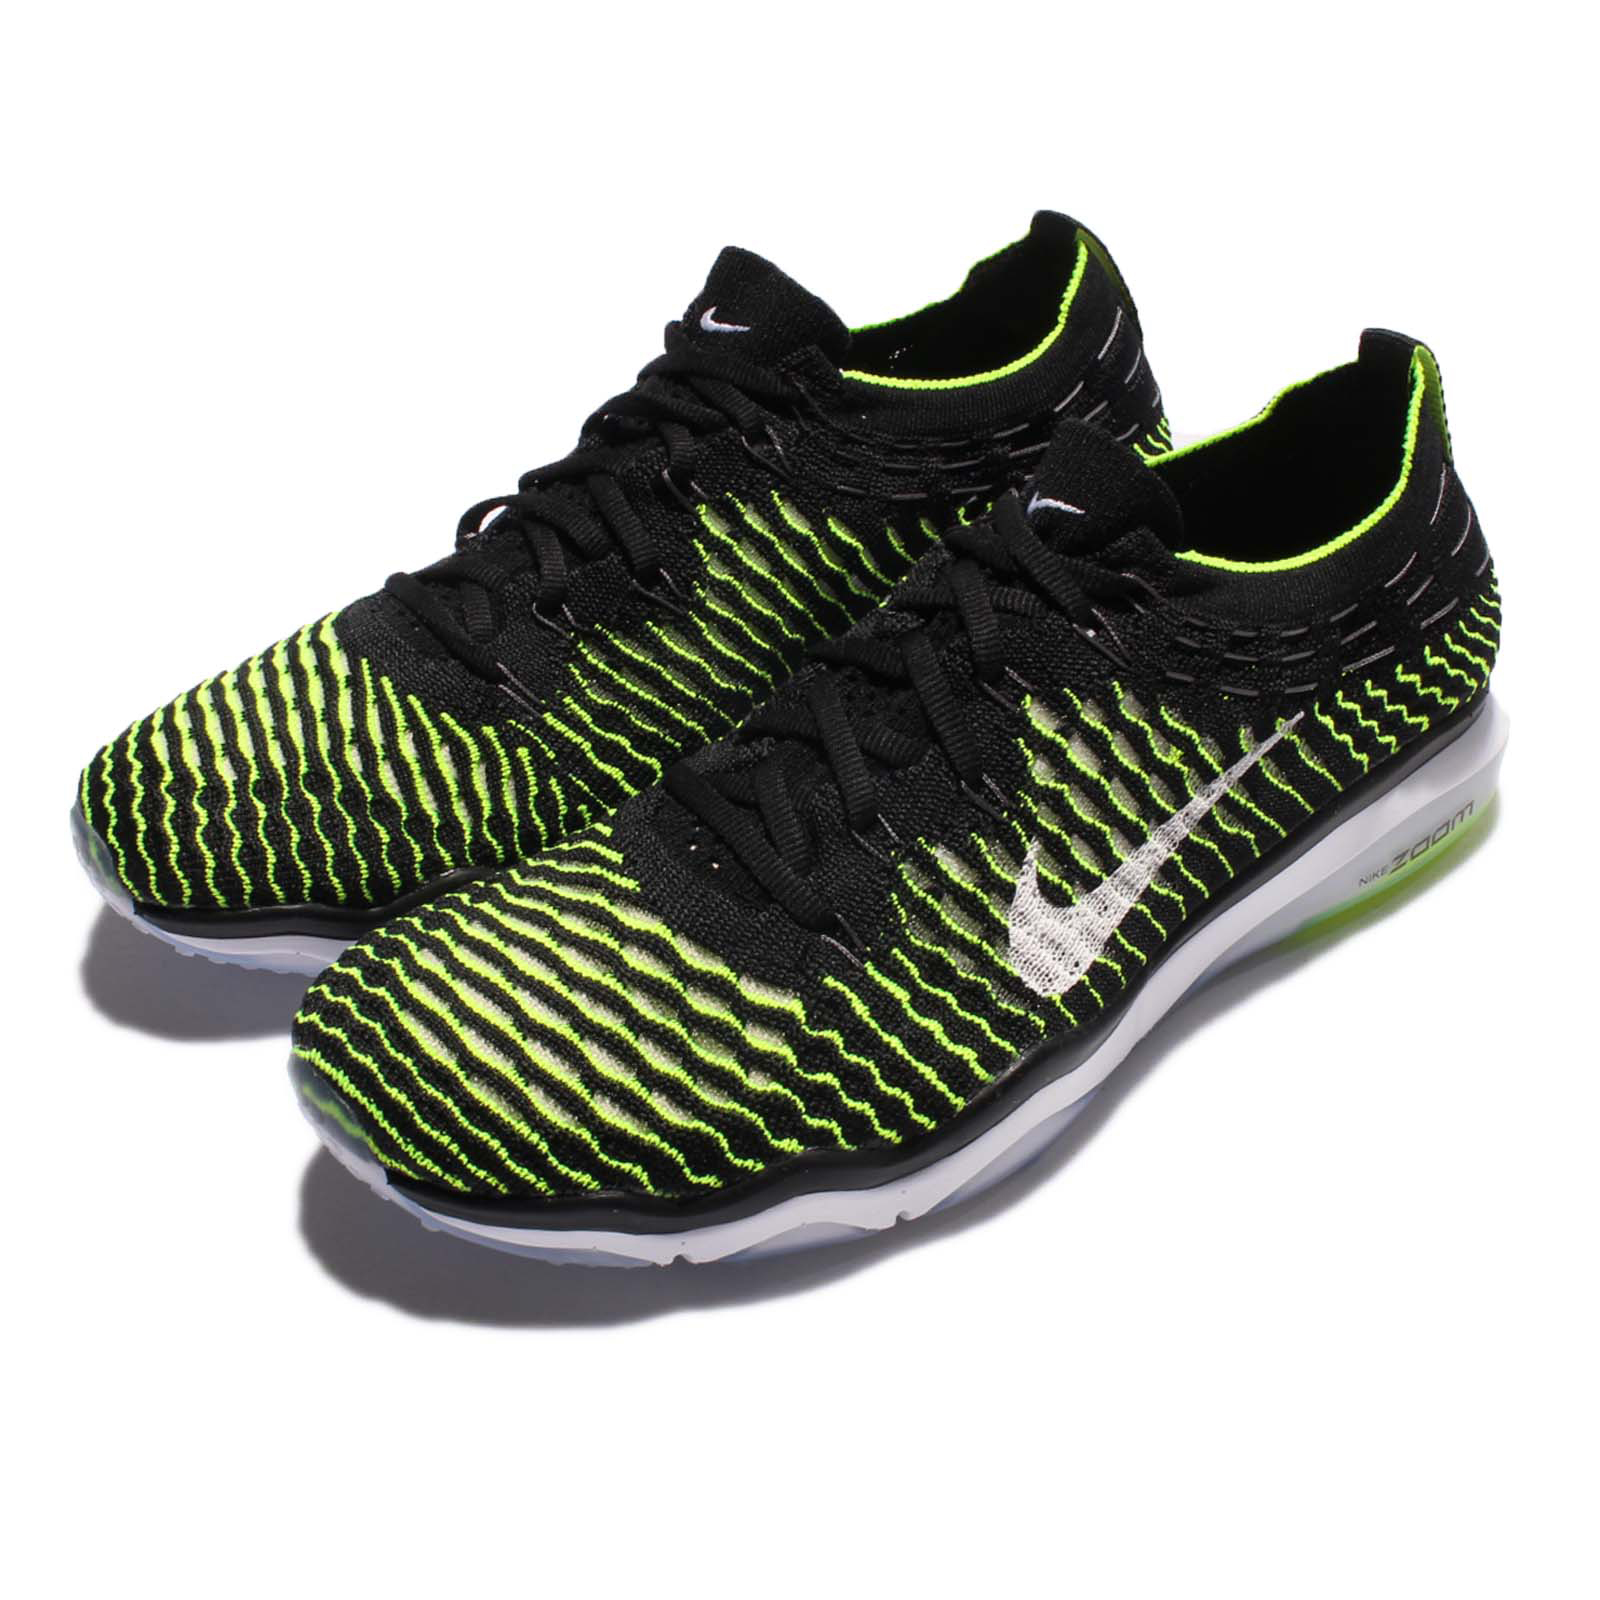 Nike Wmns Air Zoom Fearless Flyknit Black Green Women Training Shoes 850426002